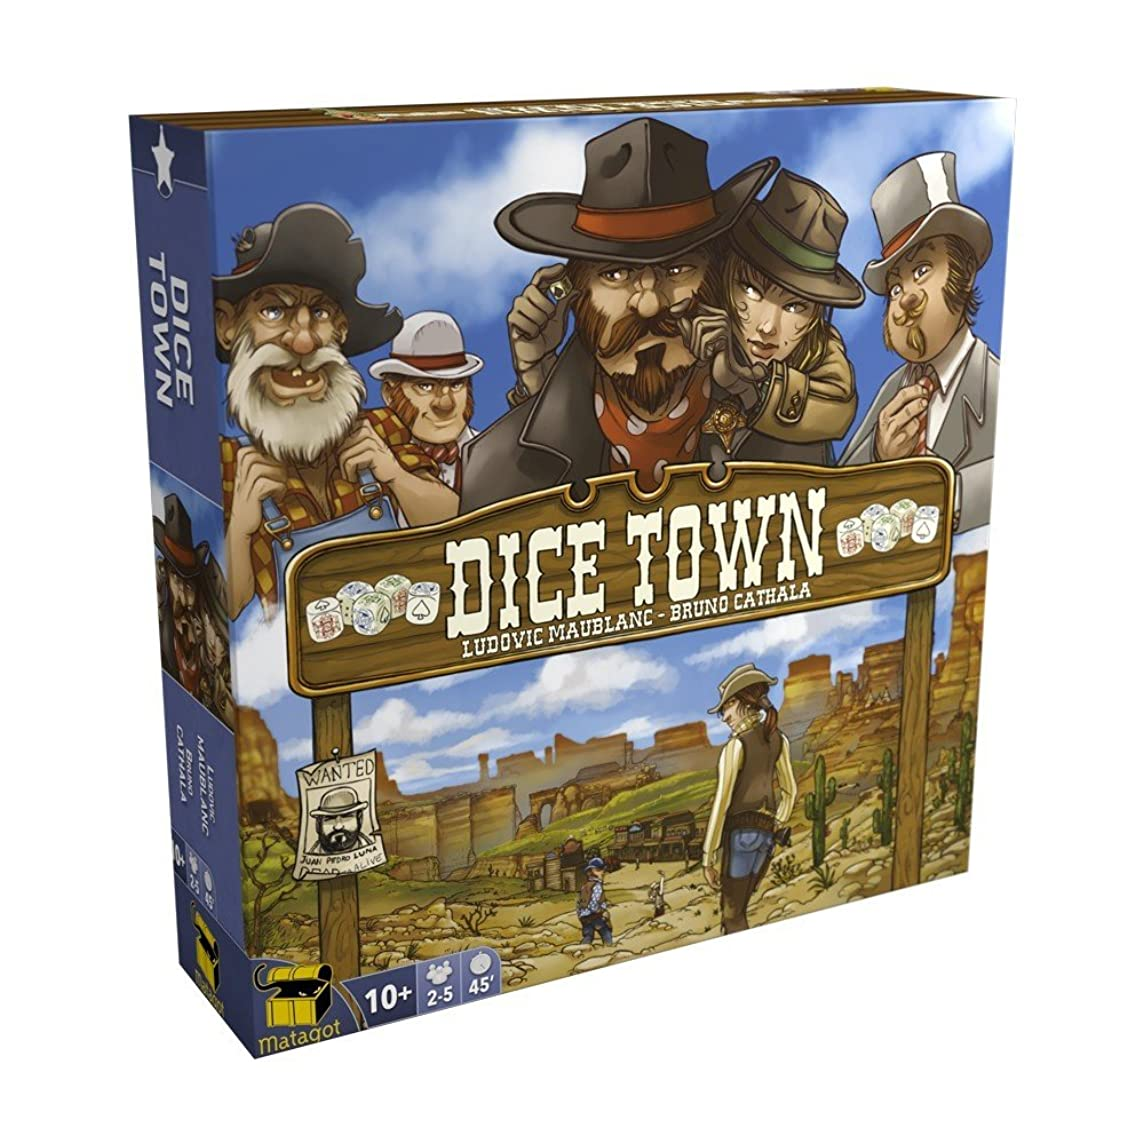 Dice Town Revised Edition